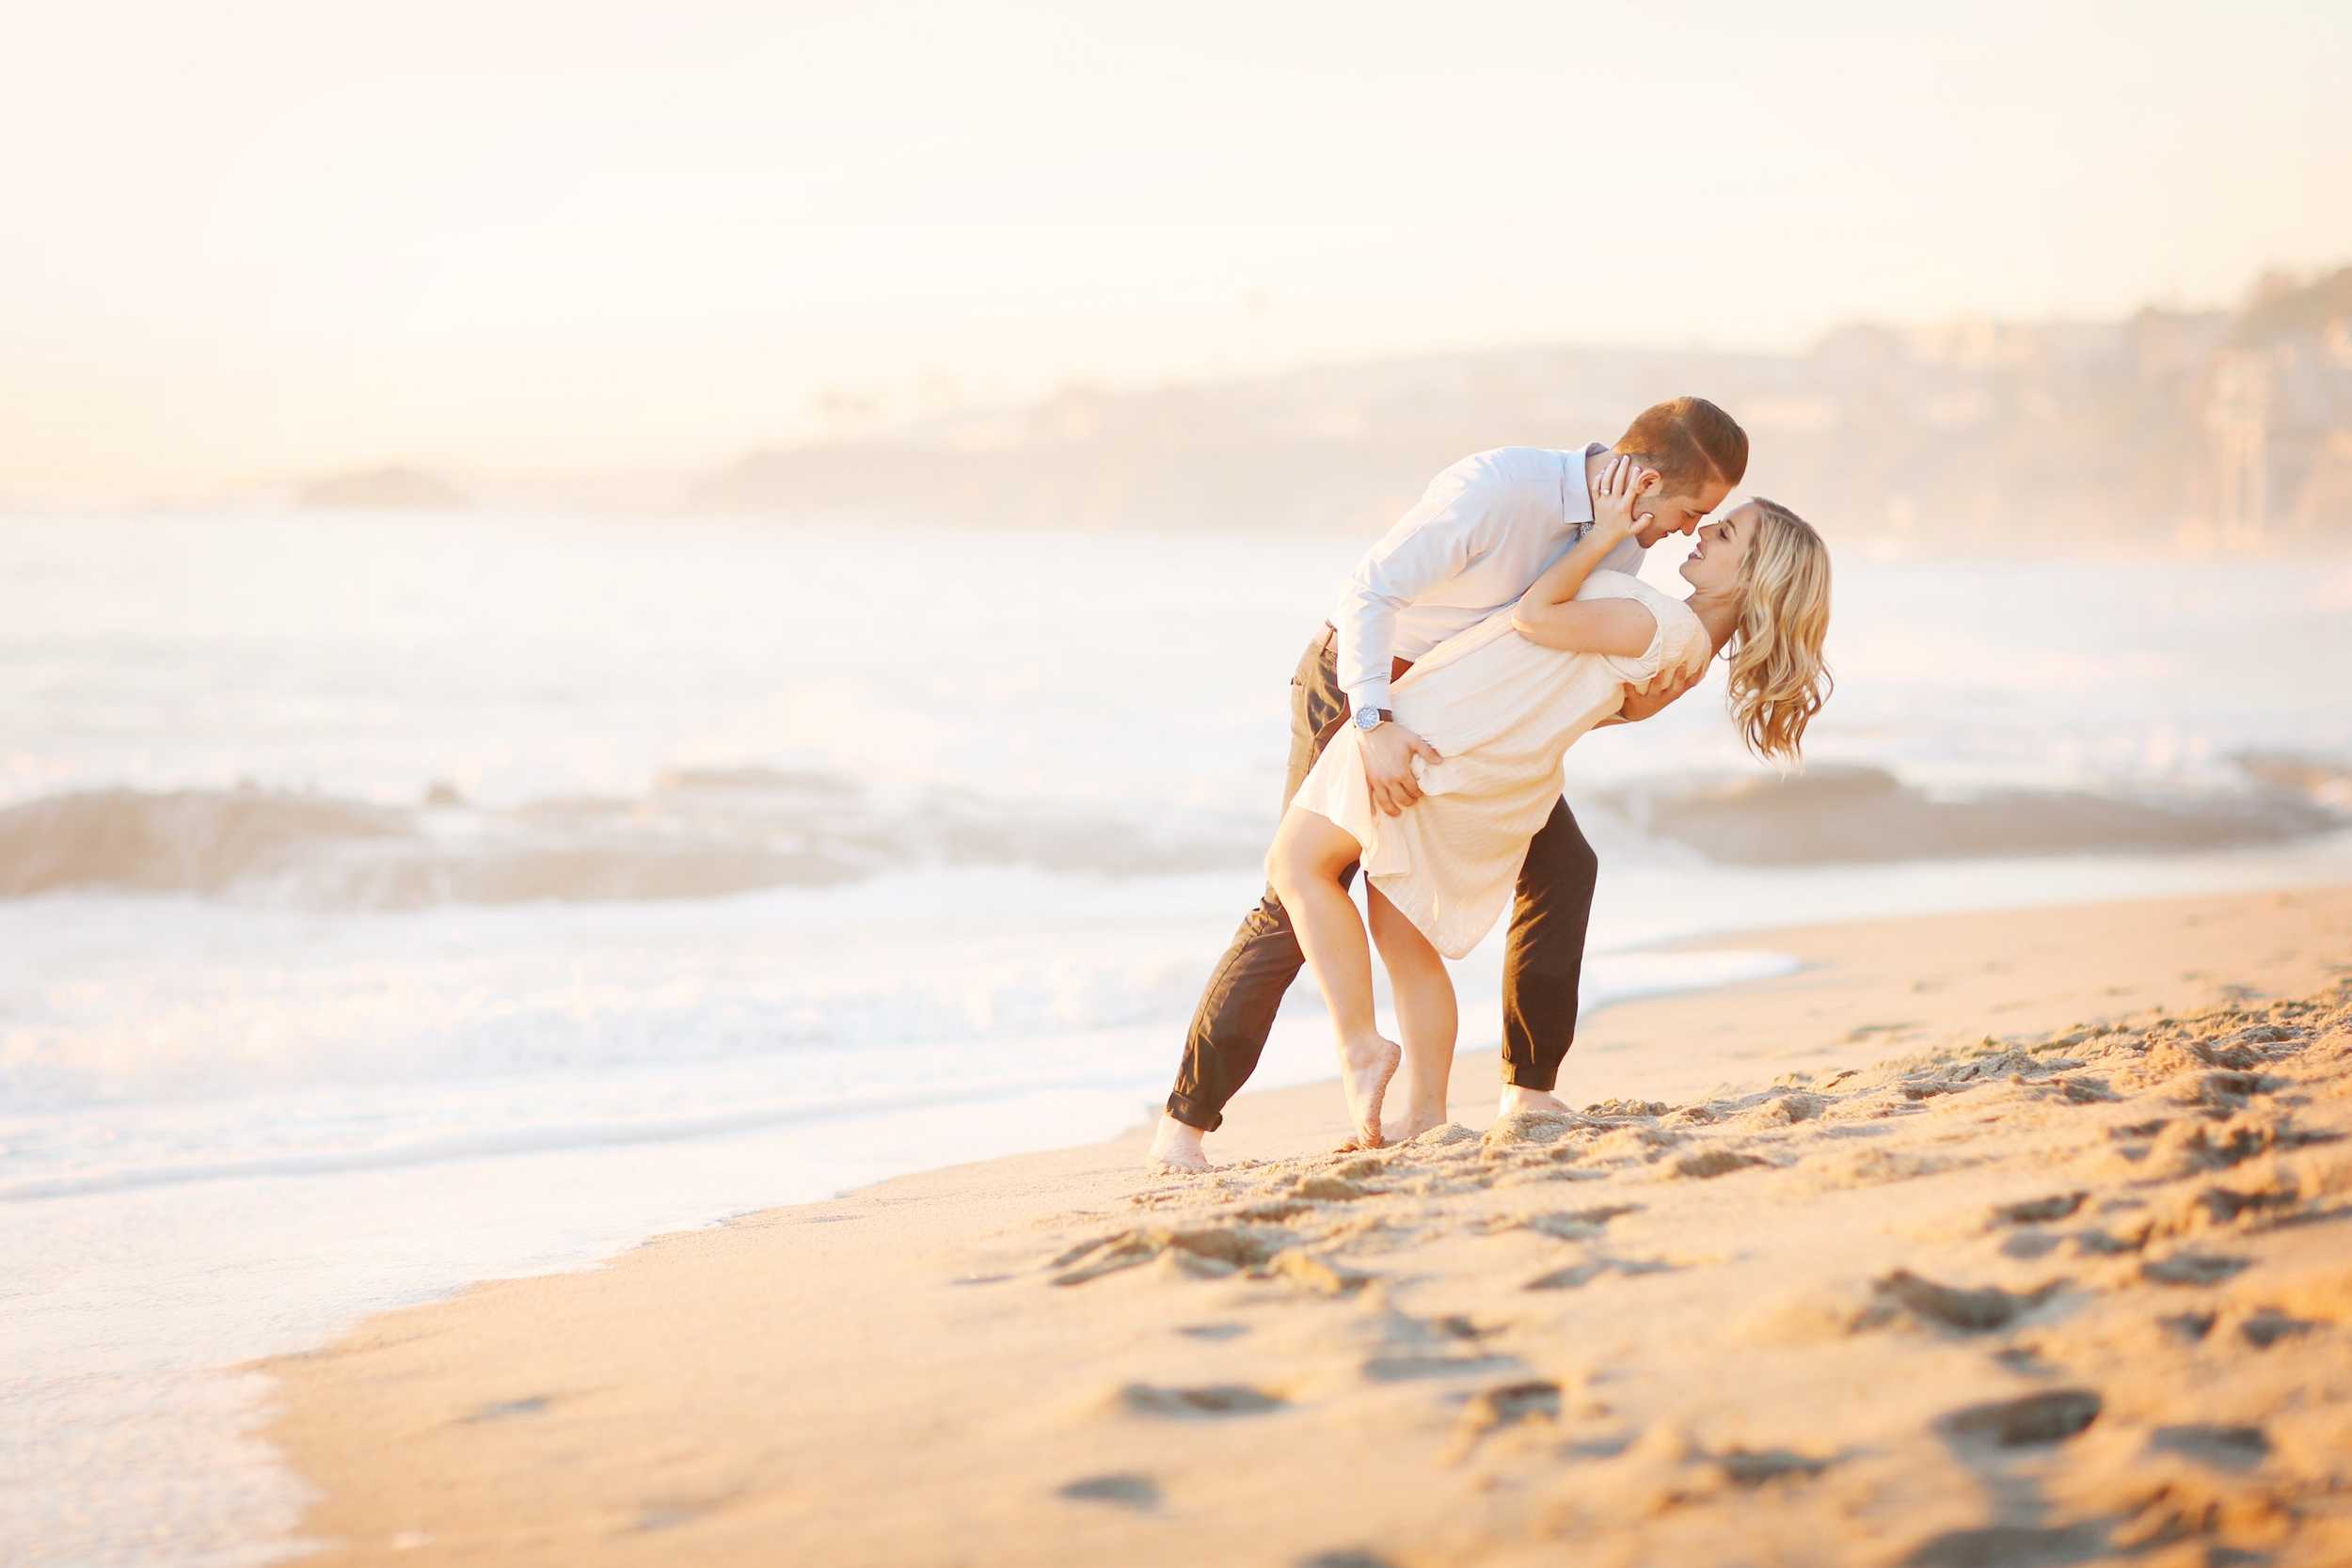 A young man tips a girl back as he goes in for a kiss at the beach in Orange County